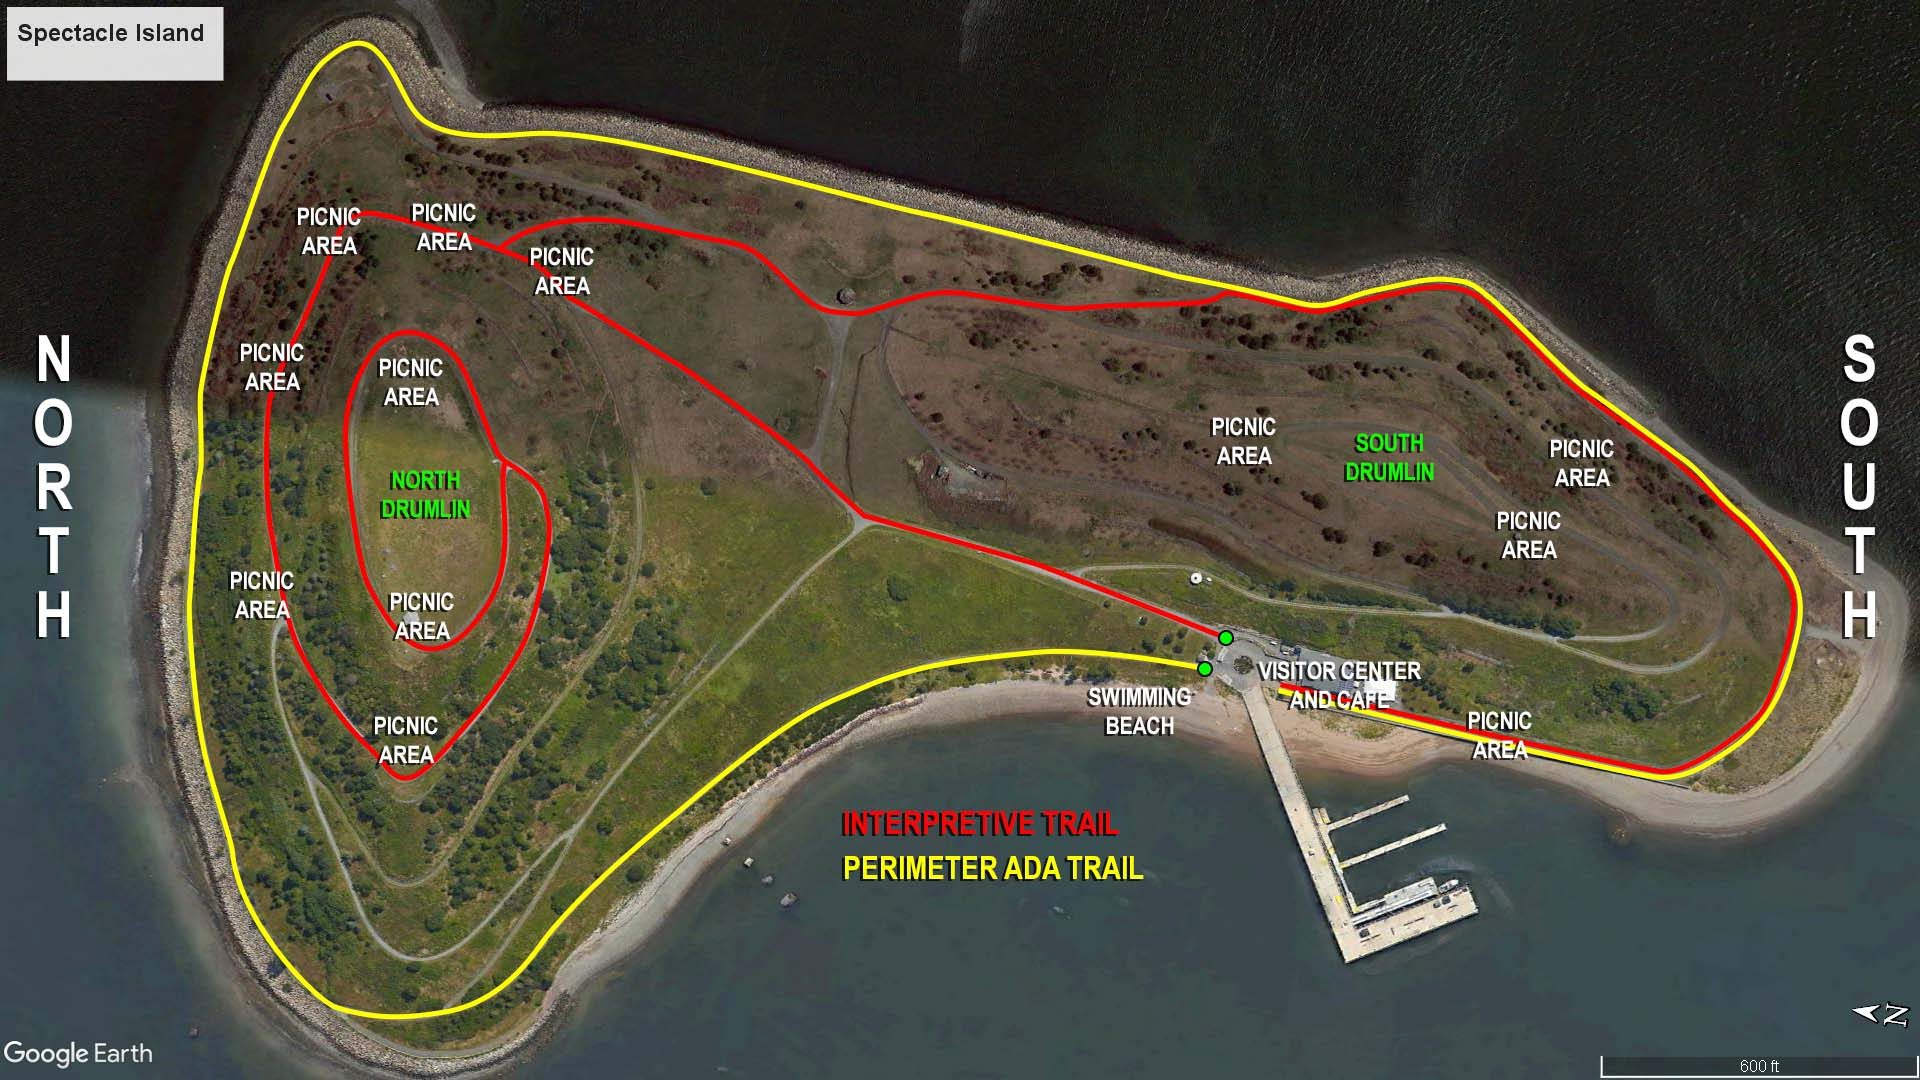 Spectacle Island Map Boston Harbor Islands National Recreation Area | SPECTACLE ISLAND